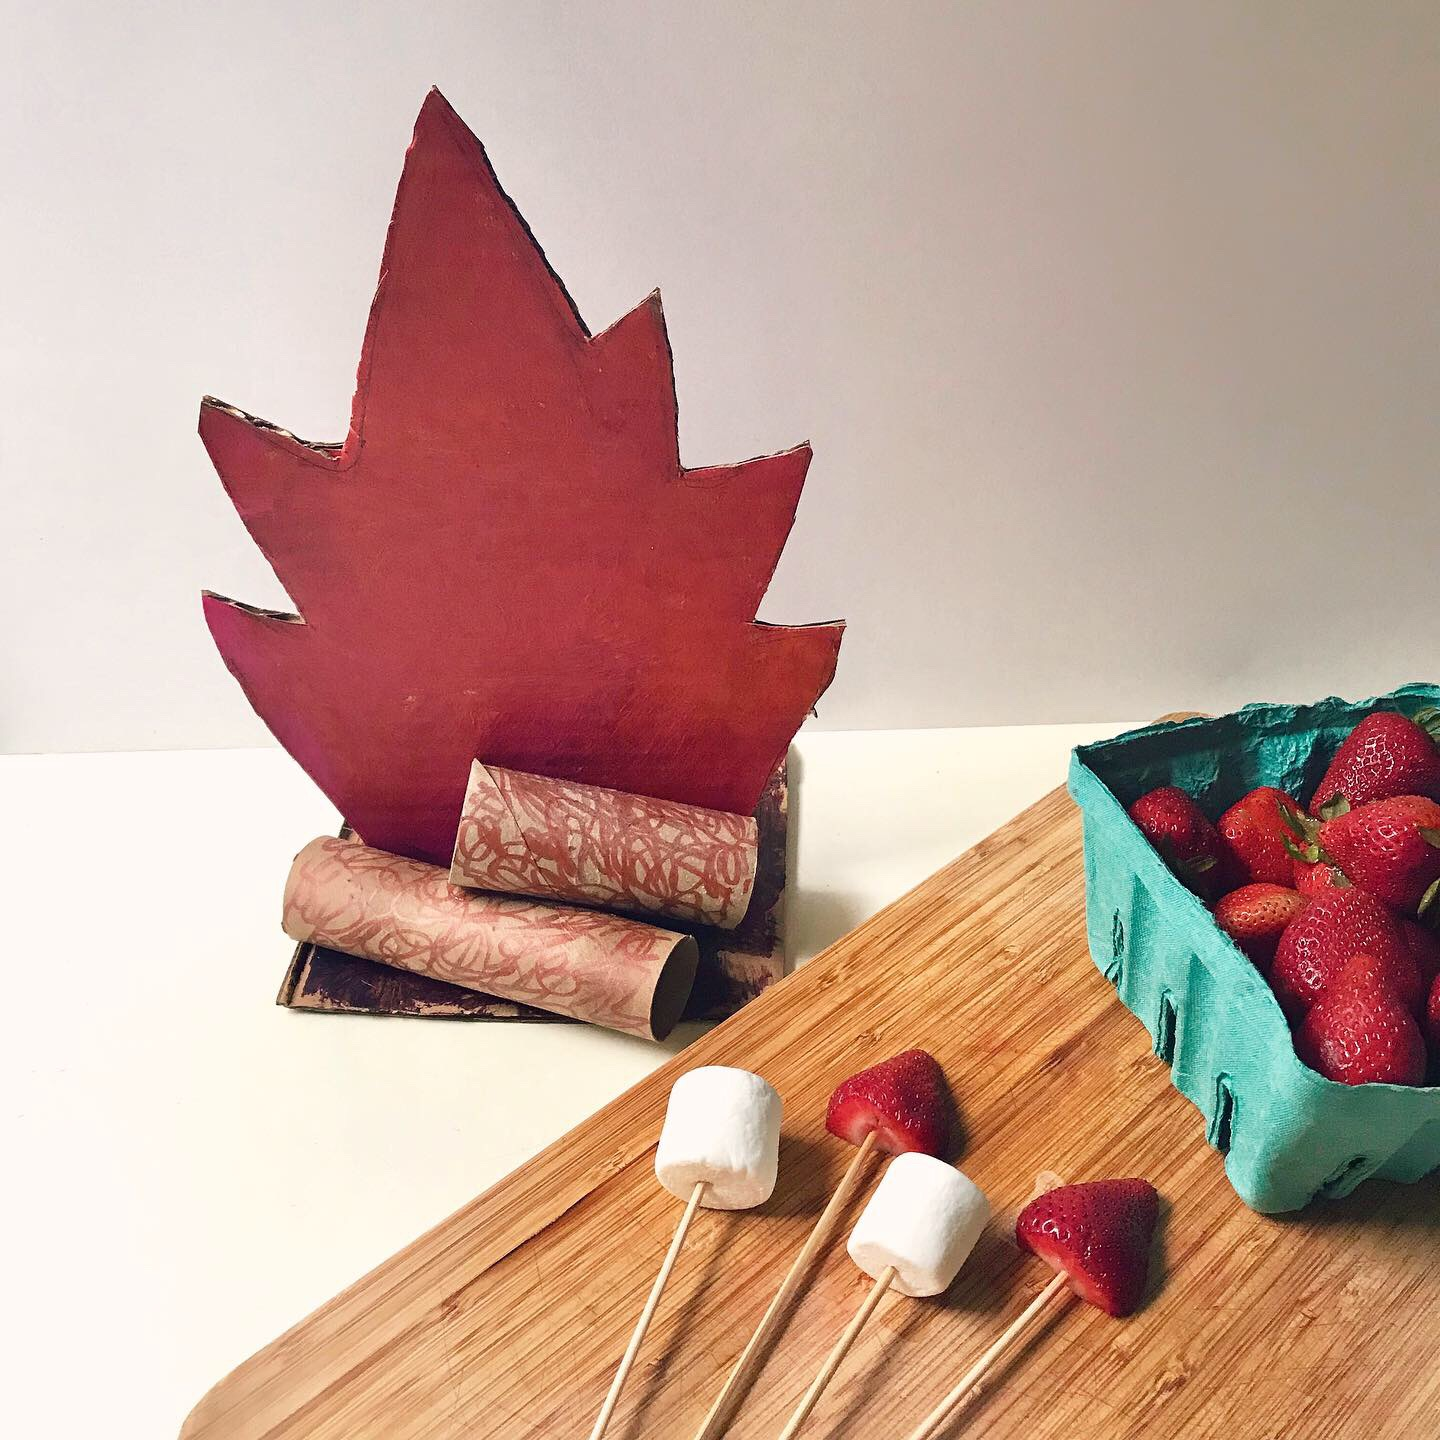 Campfire Craft creative activity for kids